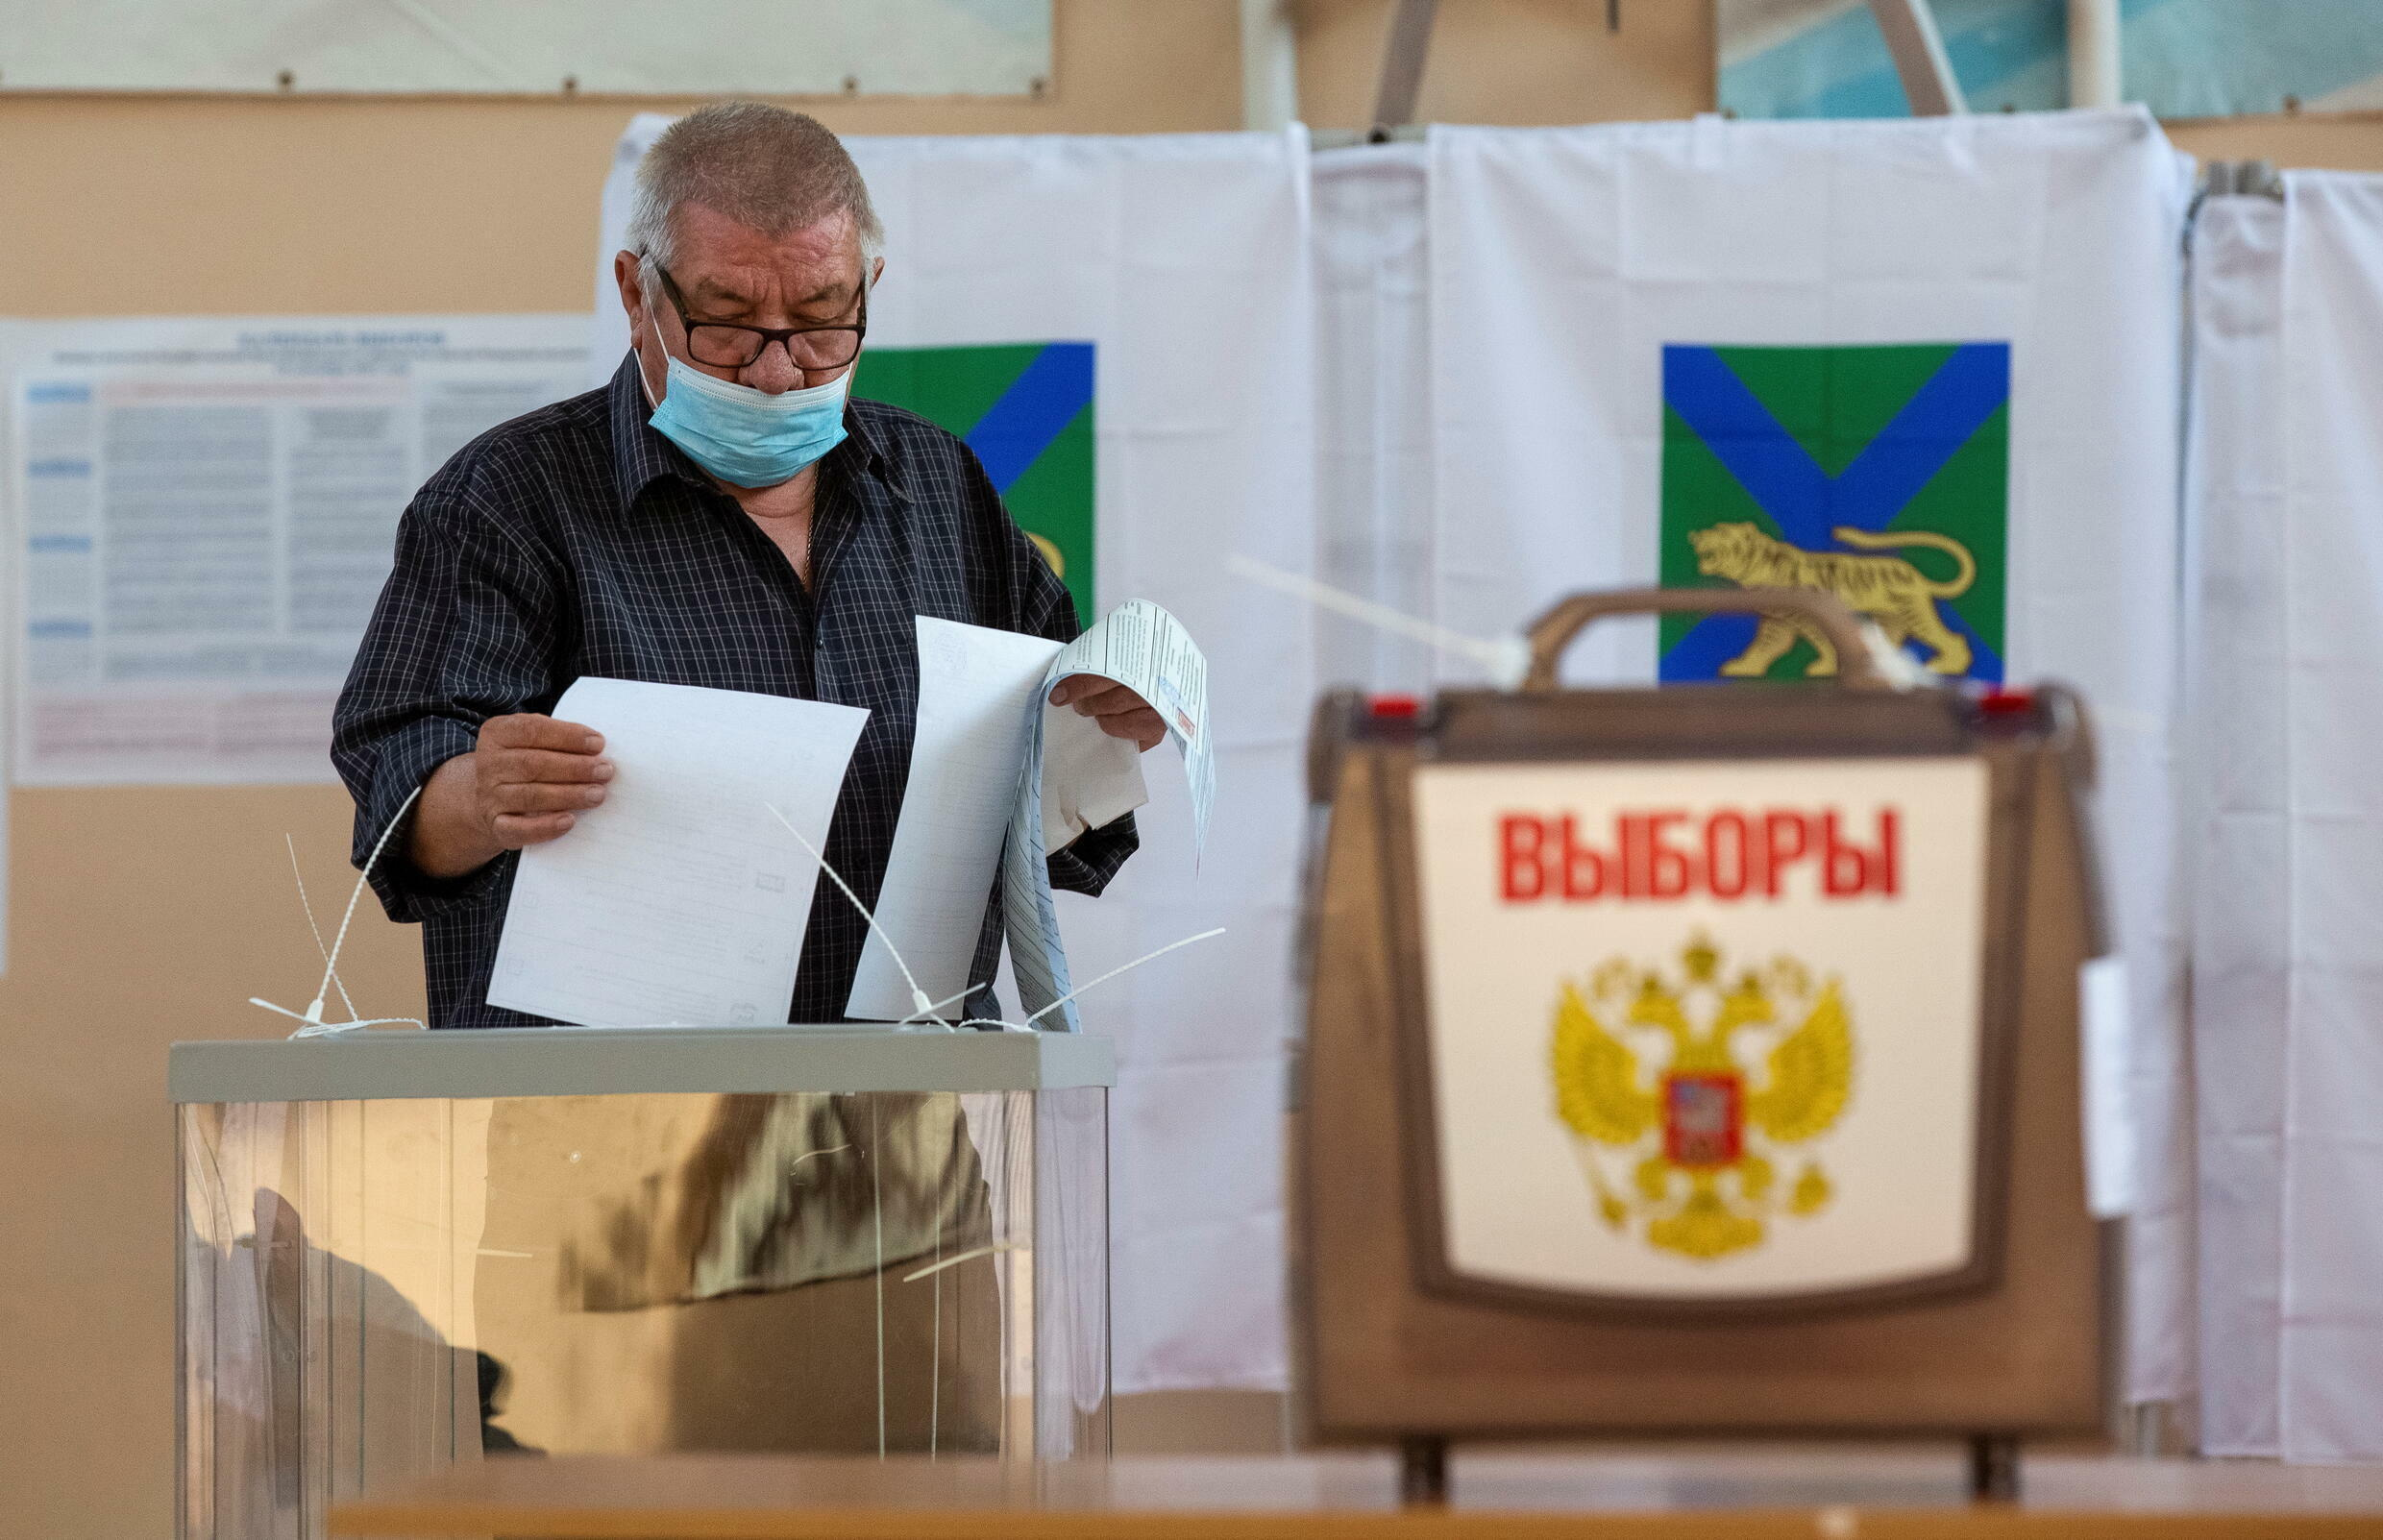 2021-09-19T010209Z_591874957_RC2PSP9MLTME_RTRMADP_3_RUSSIA-ELECTION